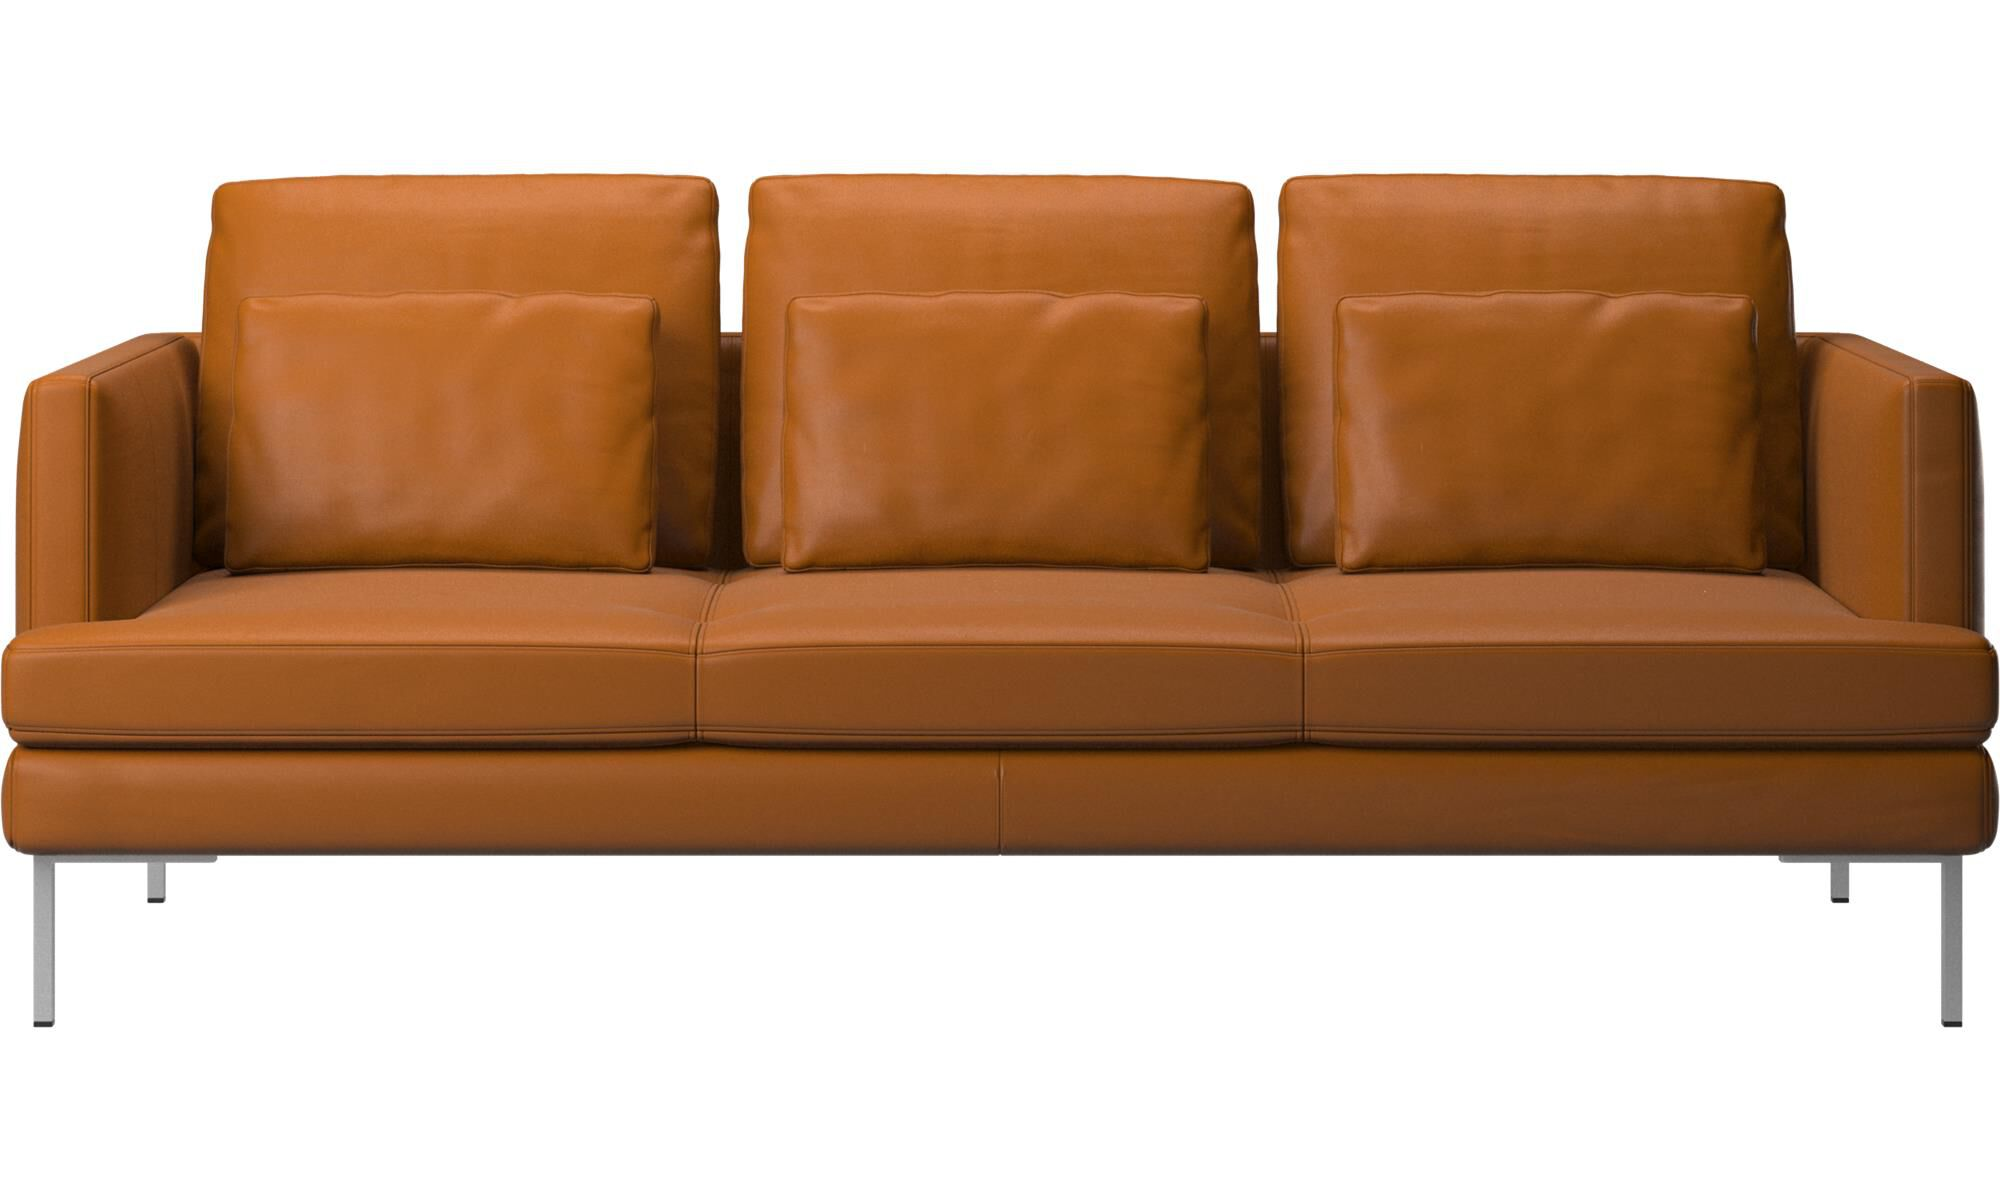 Modern 3 Seater Sofas Contemporary Design from BoConcept